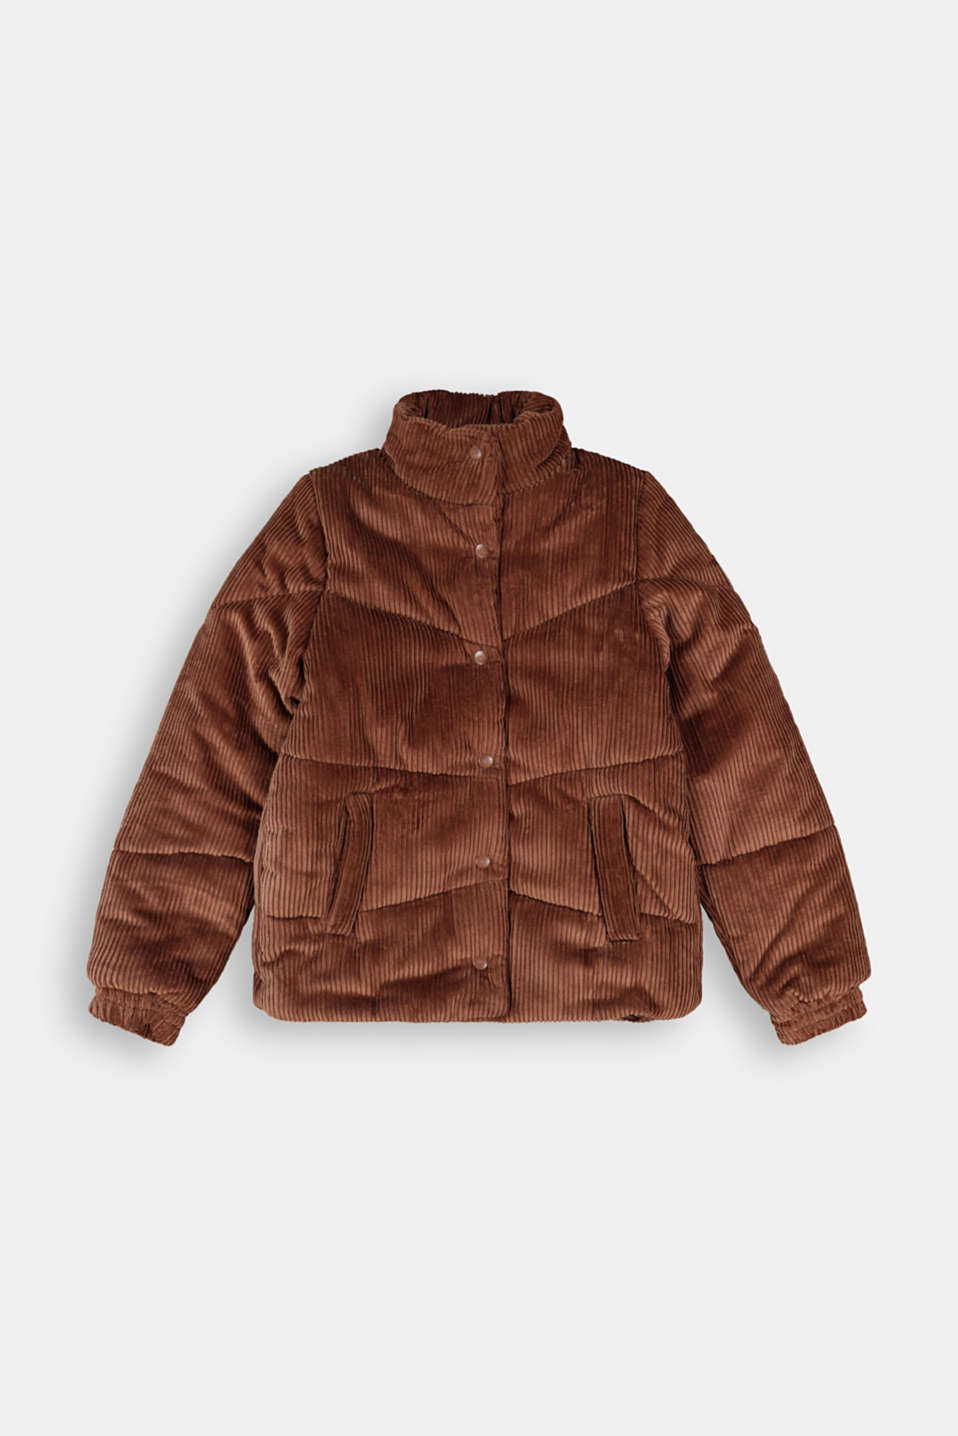 Esprit - Padded outdoor jacket made of corduroy